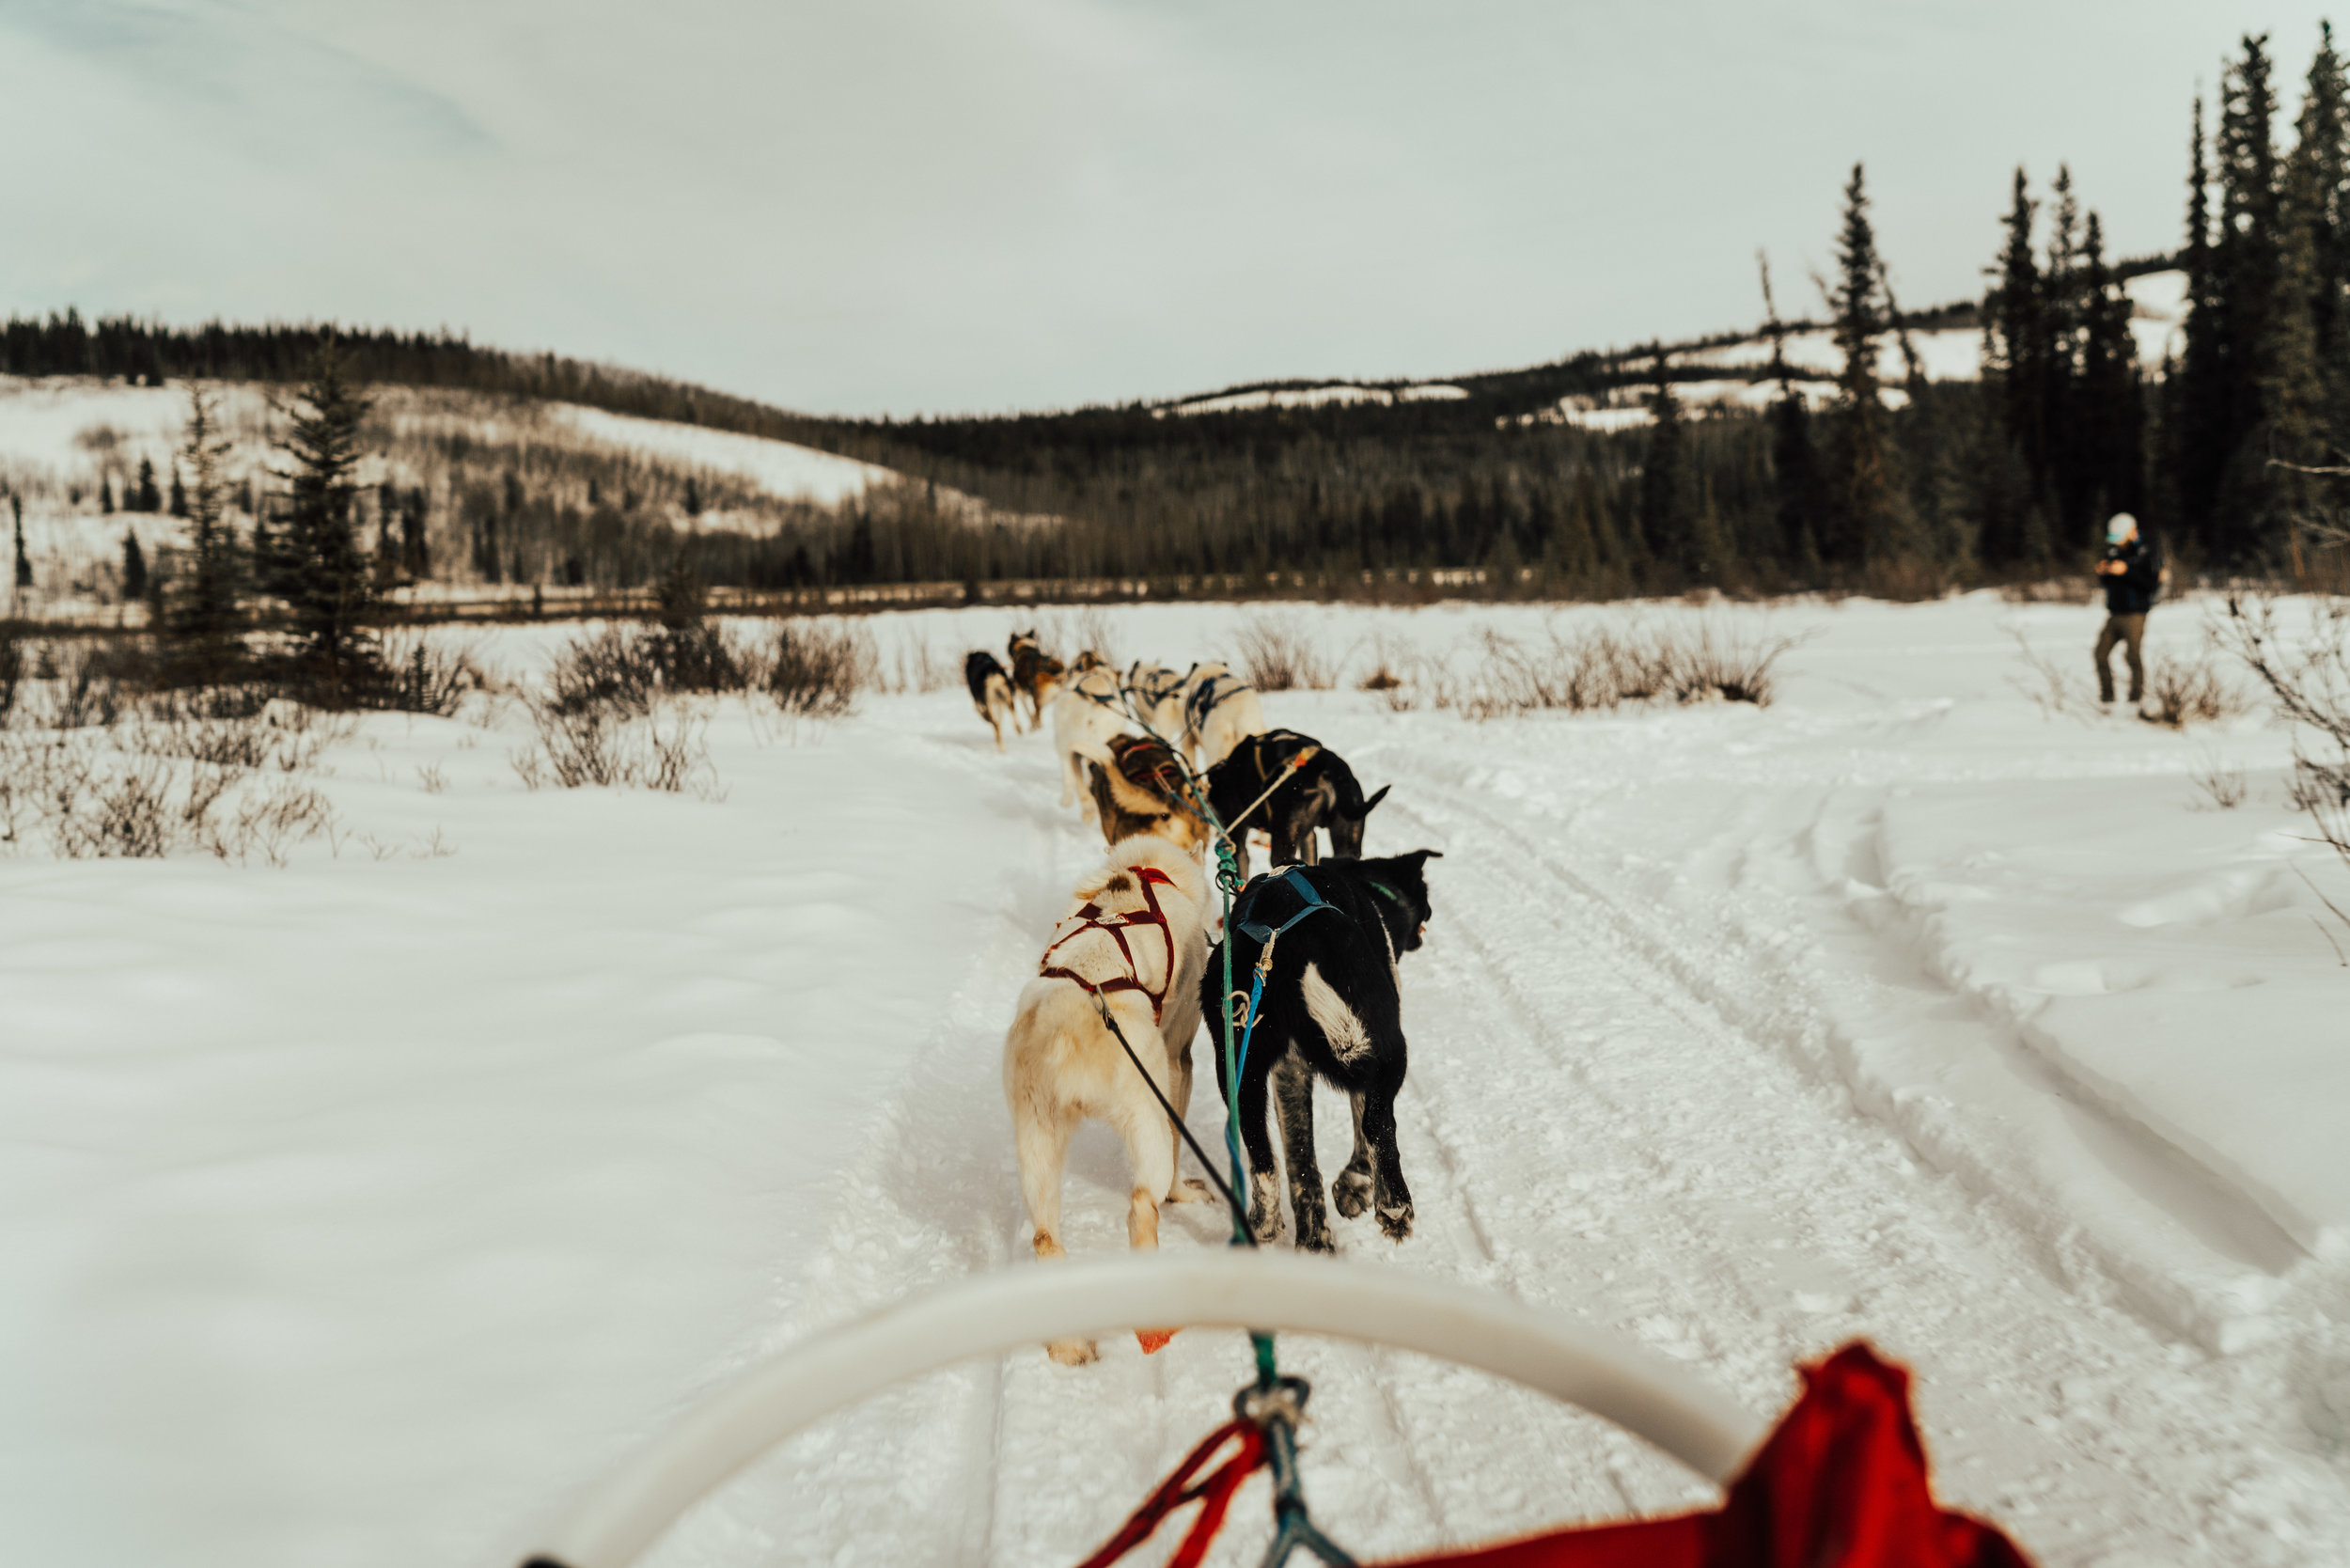 DOGSLEDDING - Up north, the huskies are waiting for you! Visit with dog sled teams or experience the rush of a guided dog sled tour. We support several fantastic local dogsledding operators.Activity based on availability.Time: 3.0 hoursCost: $275 including transportation